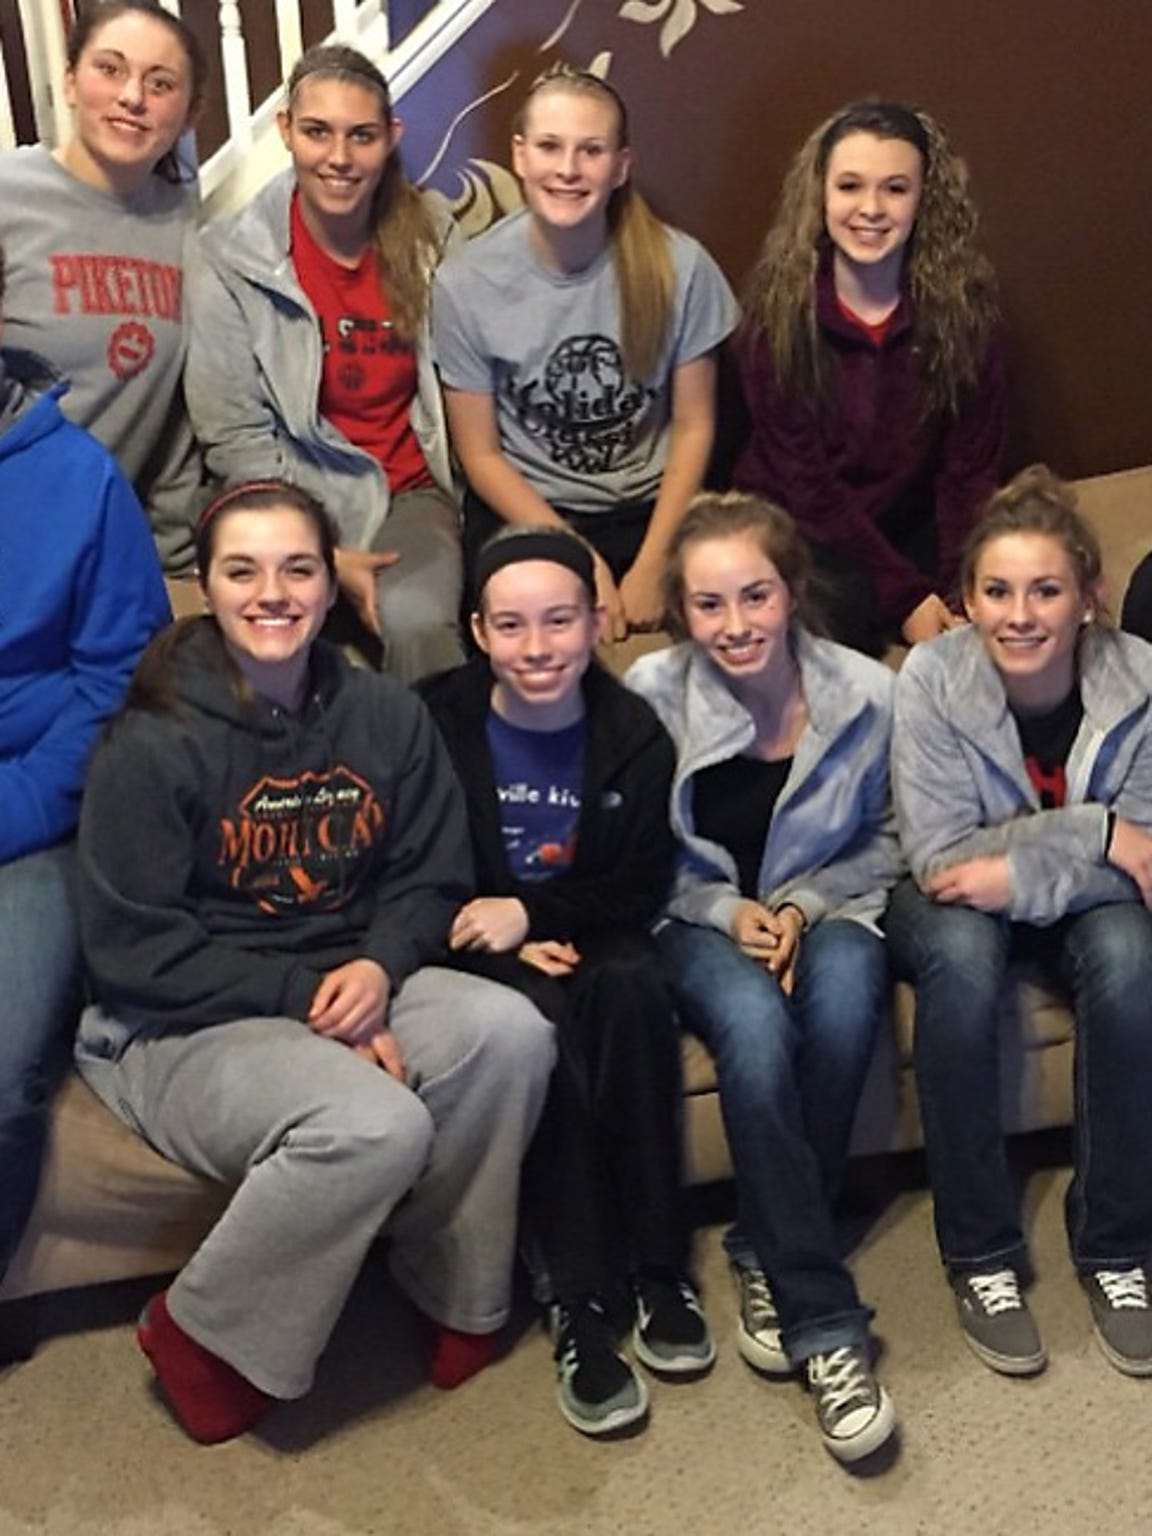 The Piketon girls' basketball team surprised Payton